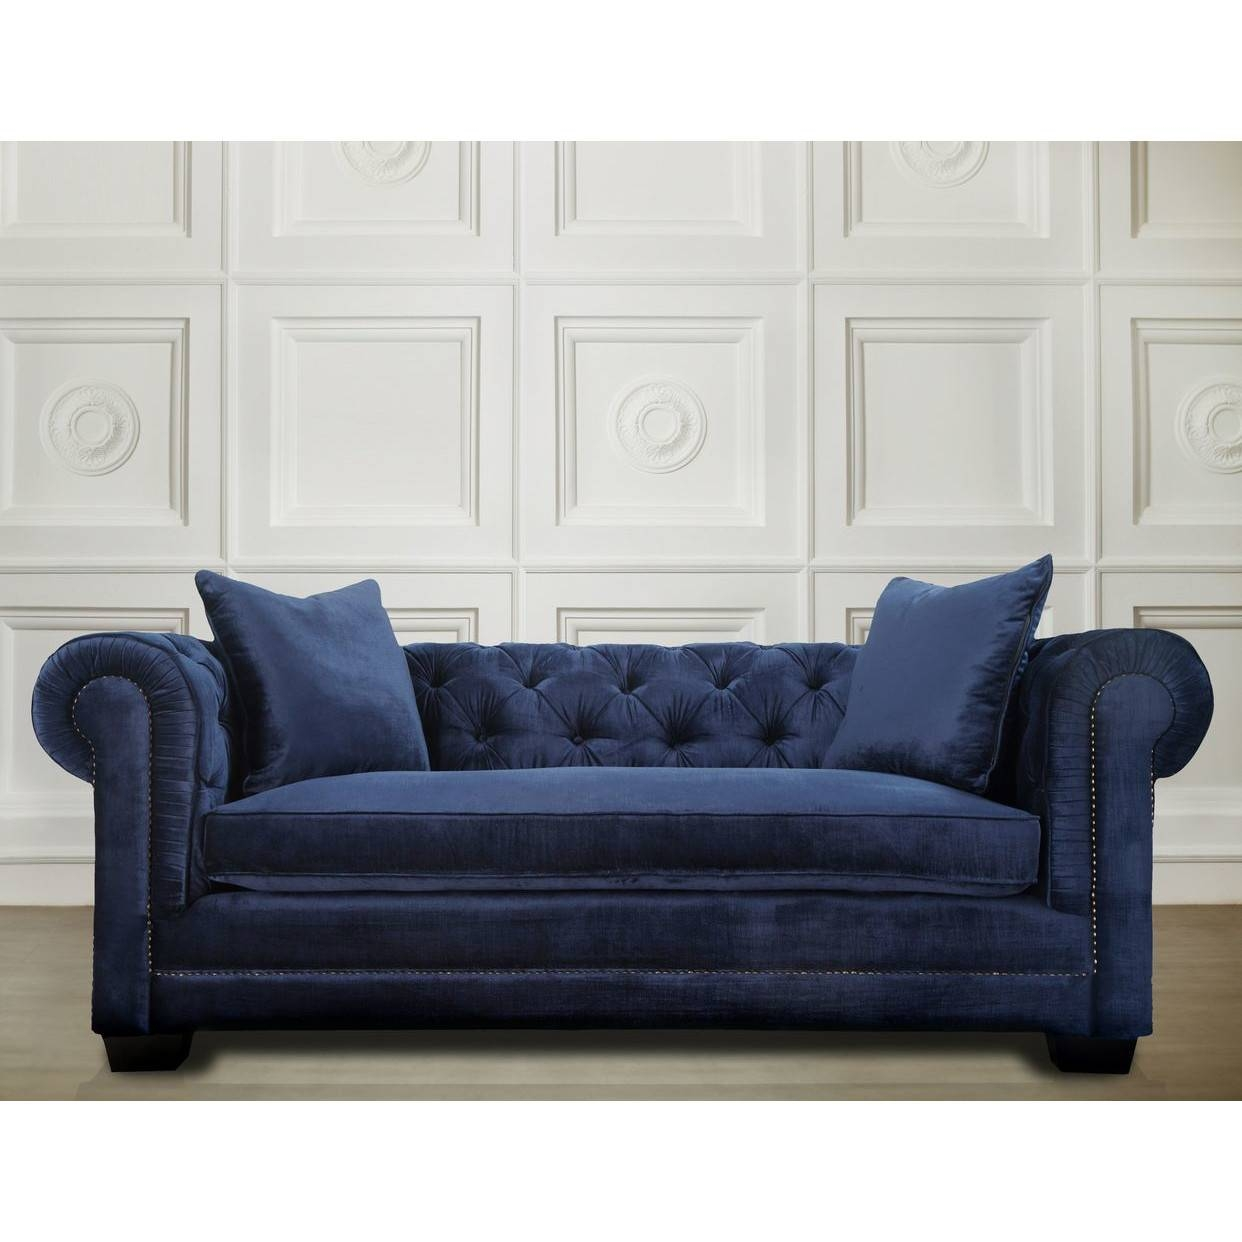 Sofas Center : Navy Blue Couch Ever Since I Started Our Living pertaining to Dark Blue Sofas (Image 27 of 30)